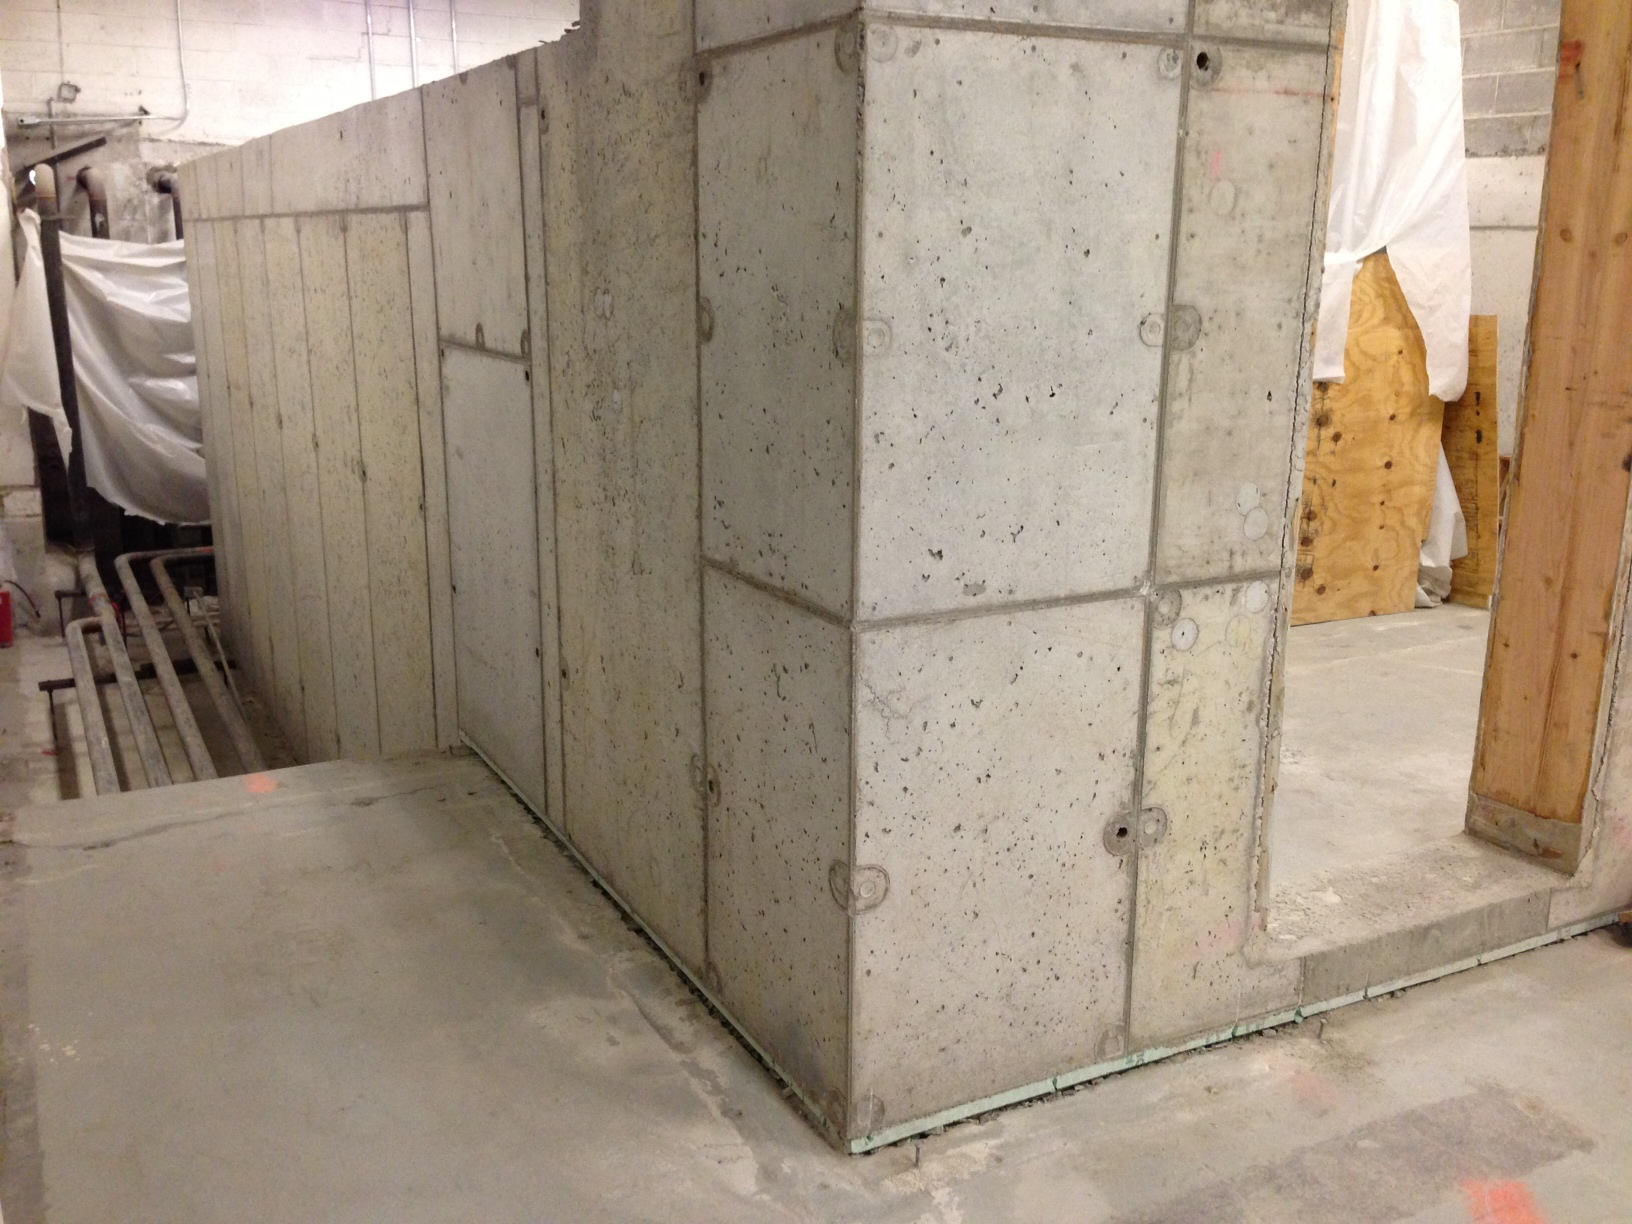 Concrete Wall Construction : Protecting infrastructure from major floods construction